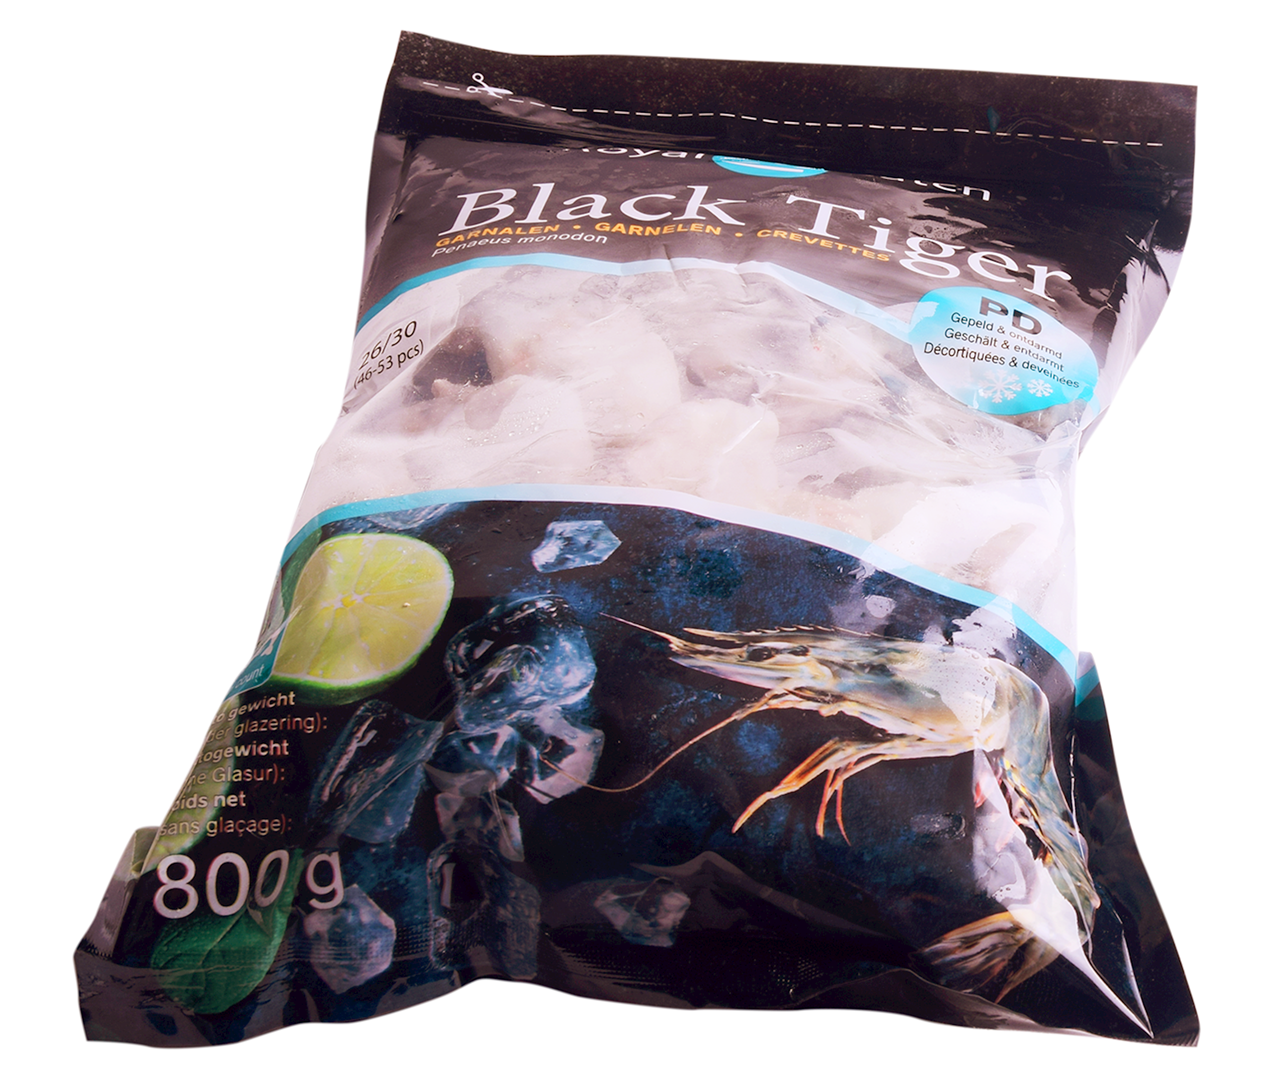 Productafbeelding GAMBA BT  GEPELD 26/30  A 1 KG ROYAL CATCH